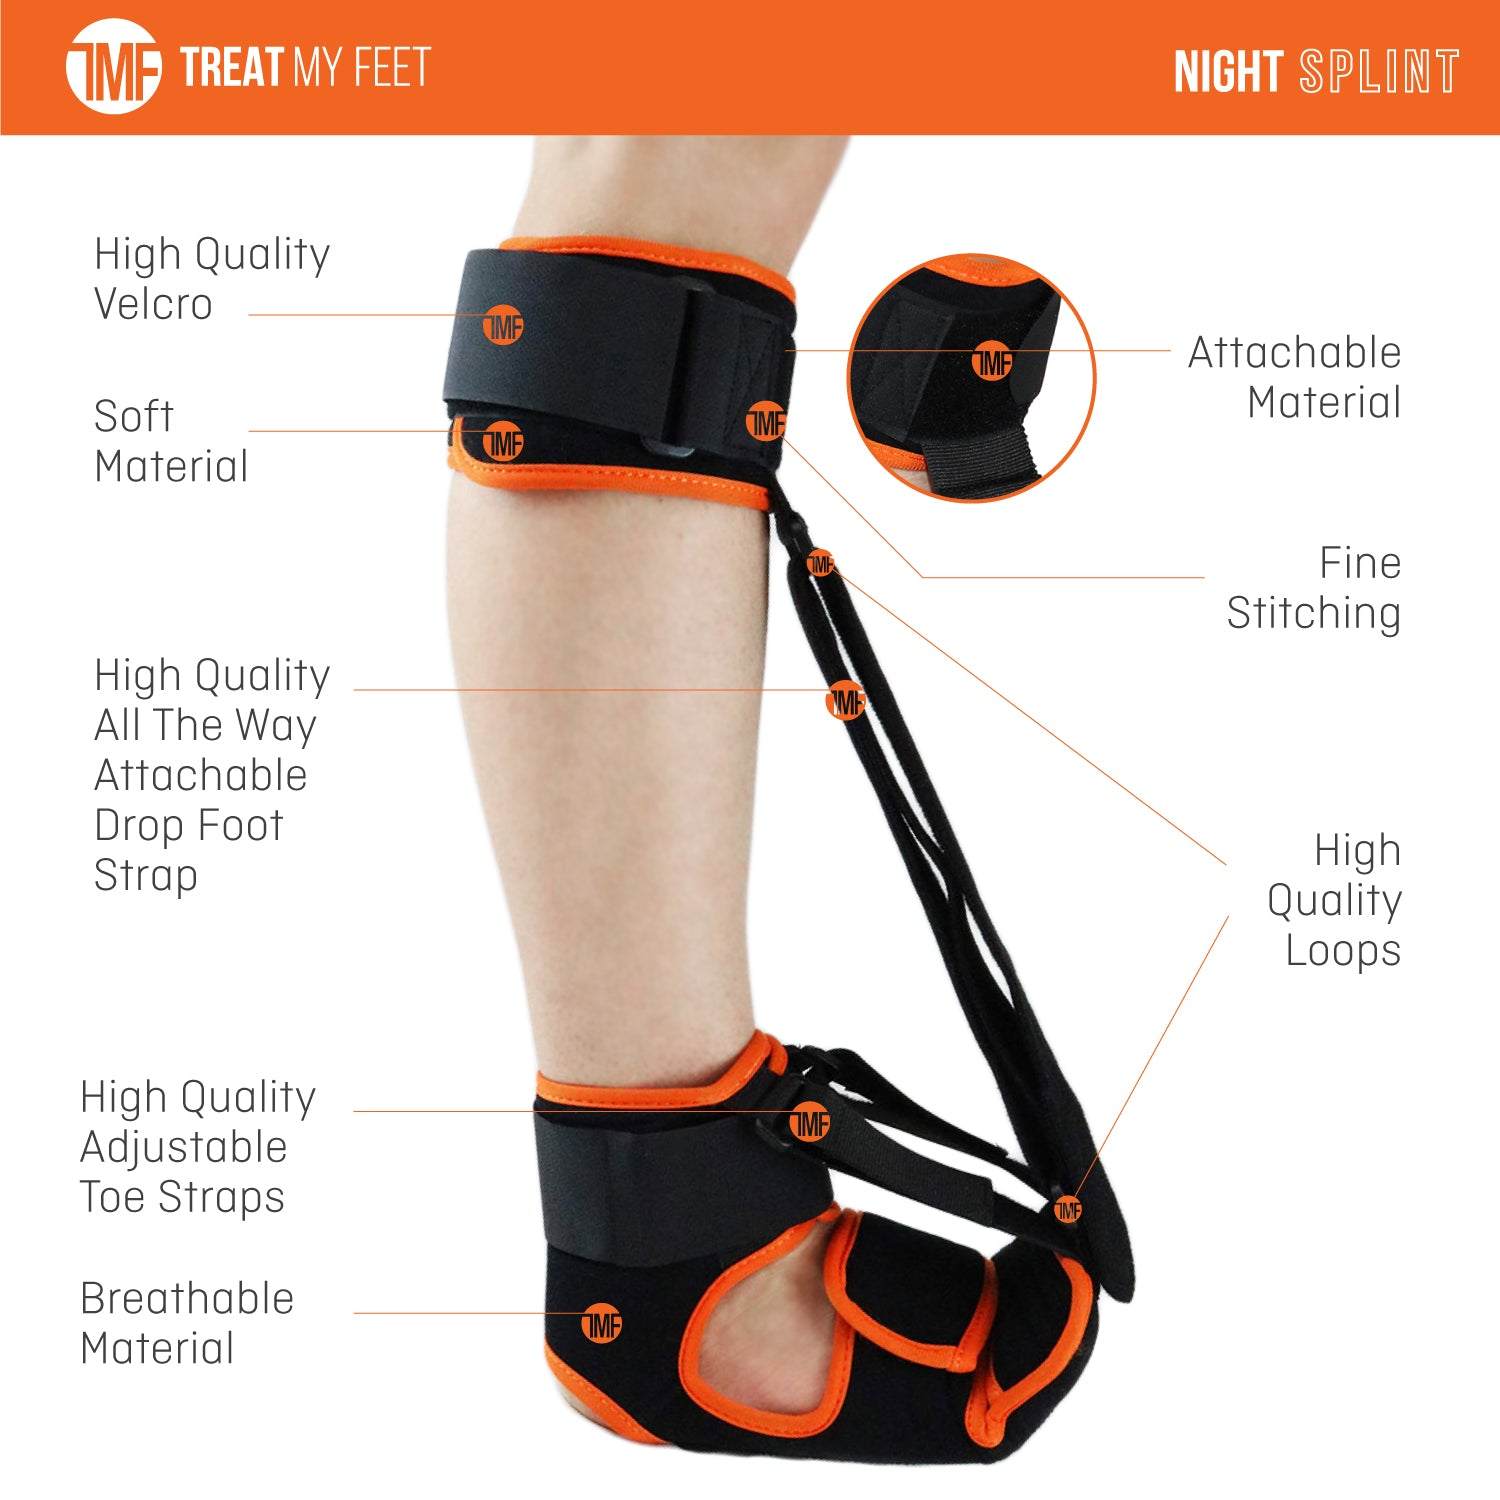 Breathable, Comfy Plantar Fasciitis Night Splint